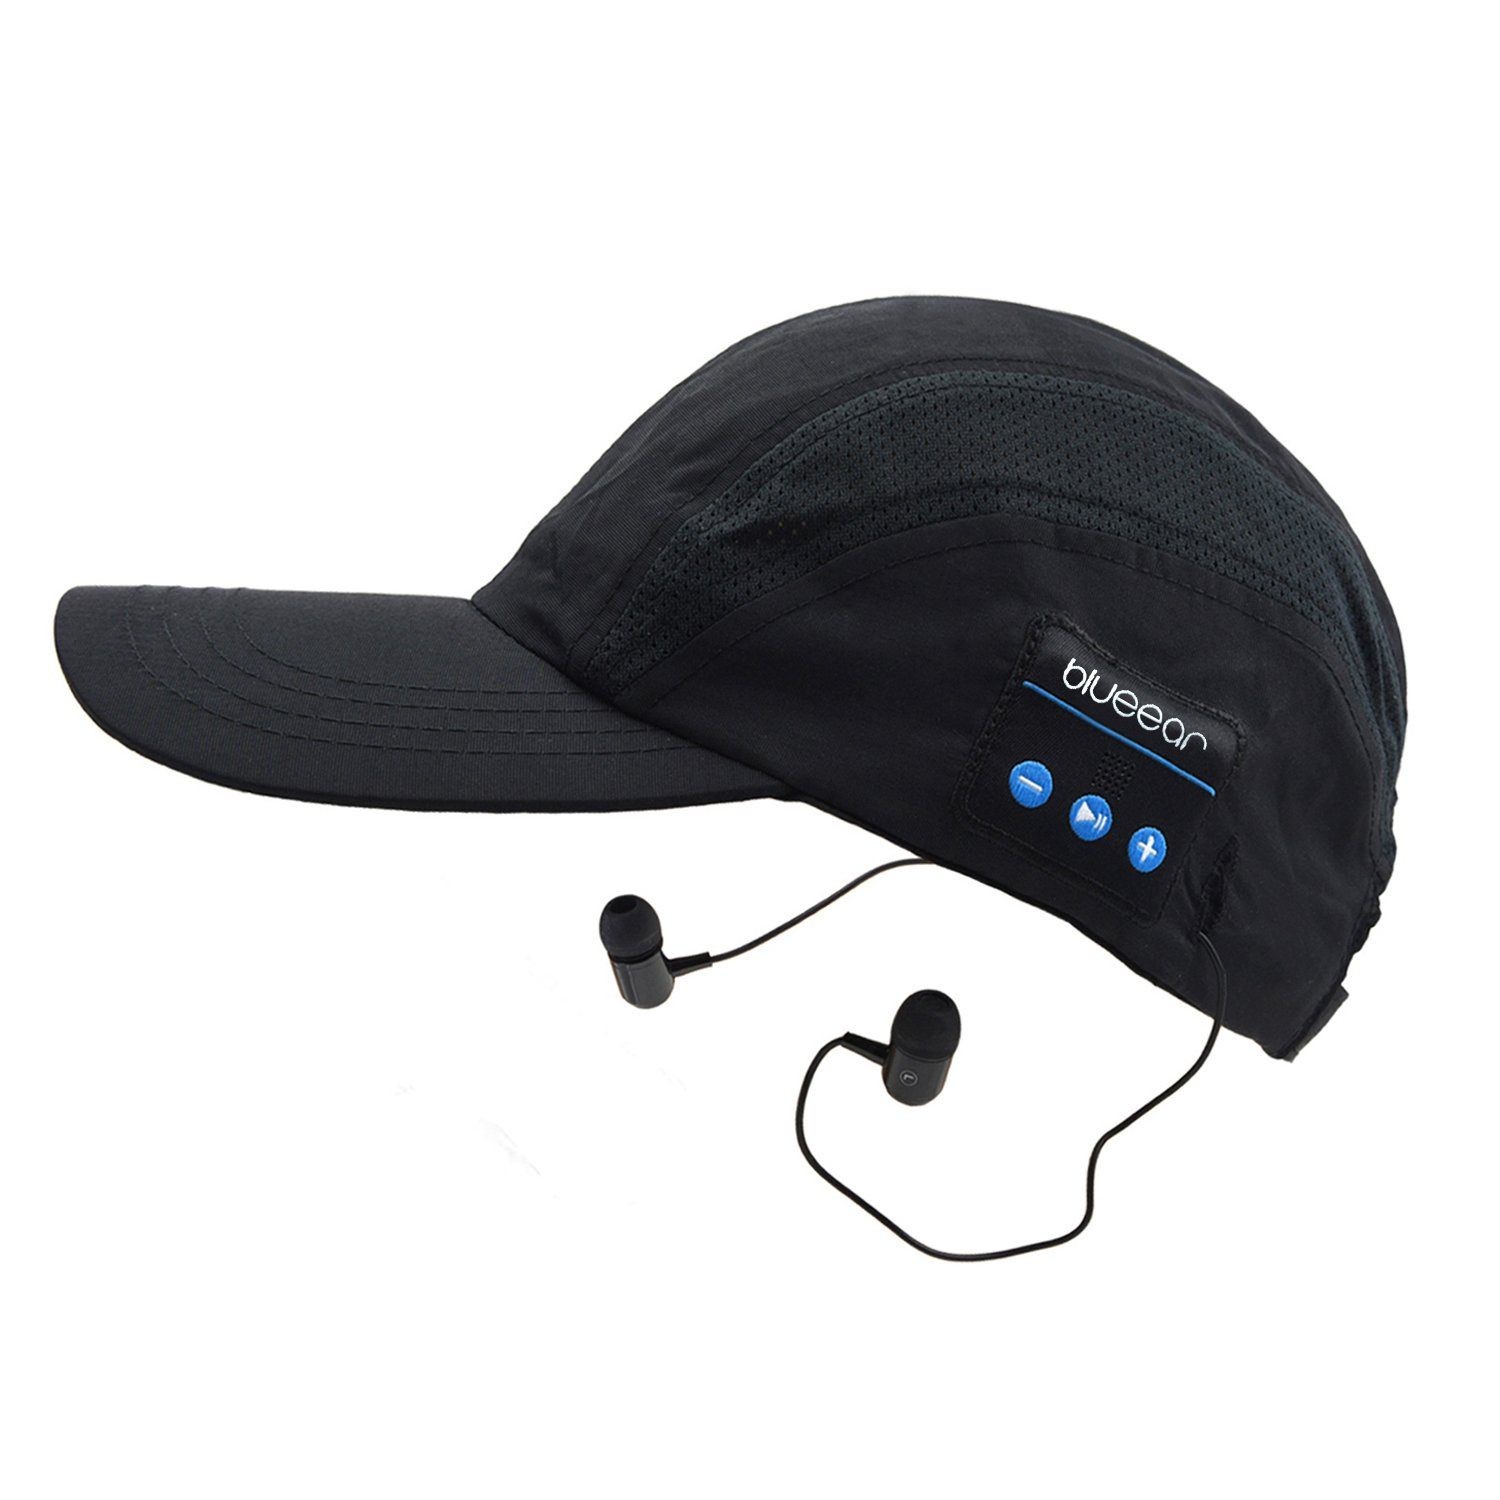 Forestfish Black Wireless Bluetooth Cap Baseball Cap Sun Hat Sports Outdoors Stereo Headset Earphone Call with Mic Adjustable for Men Women